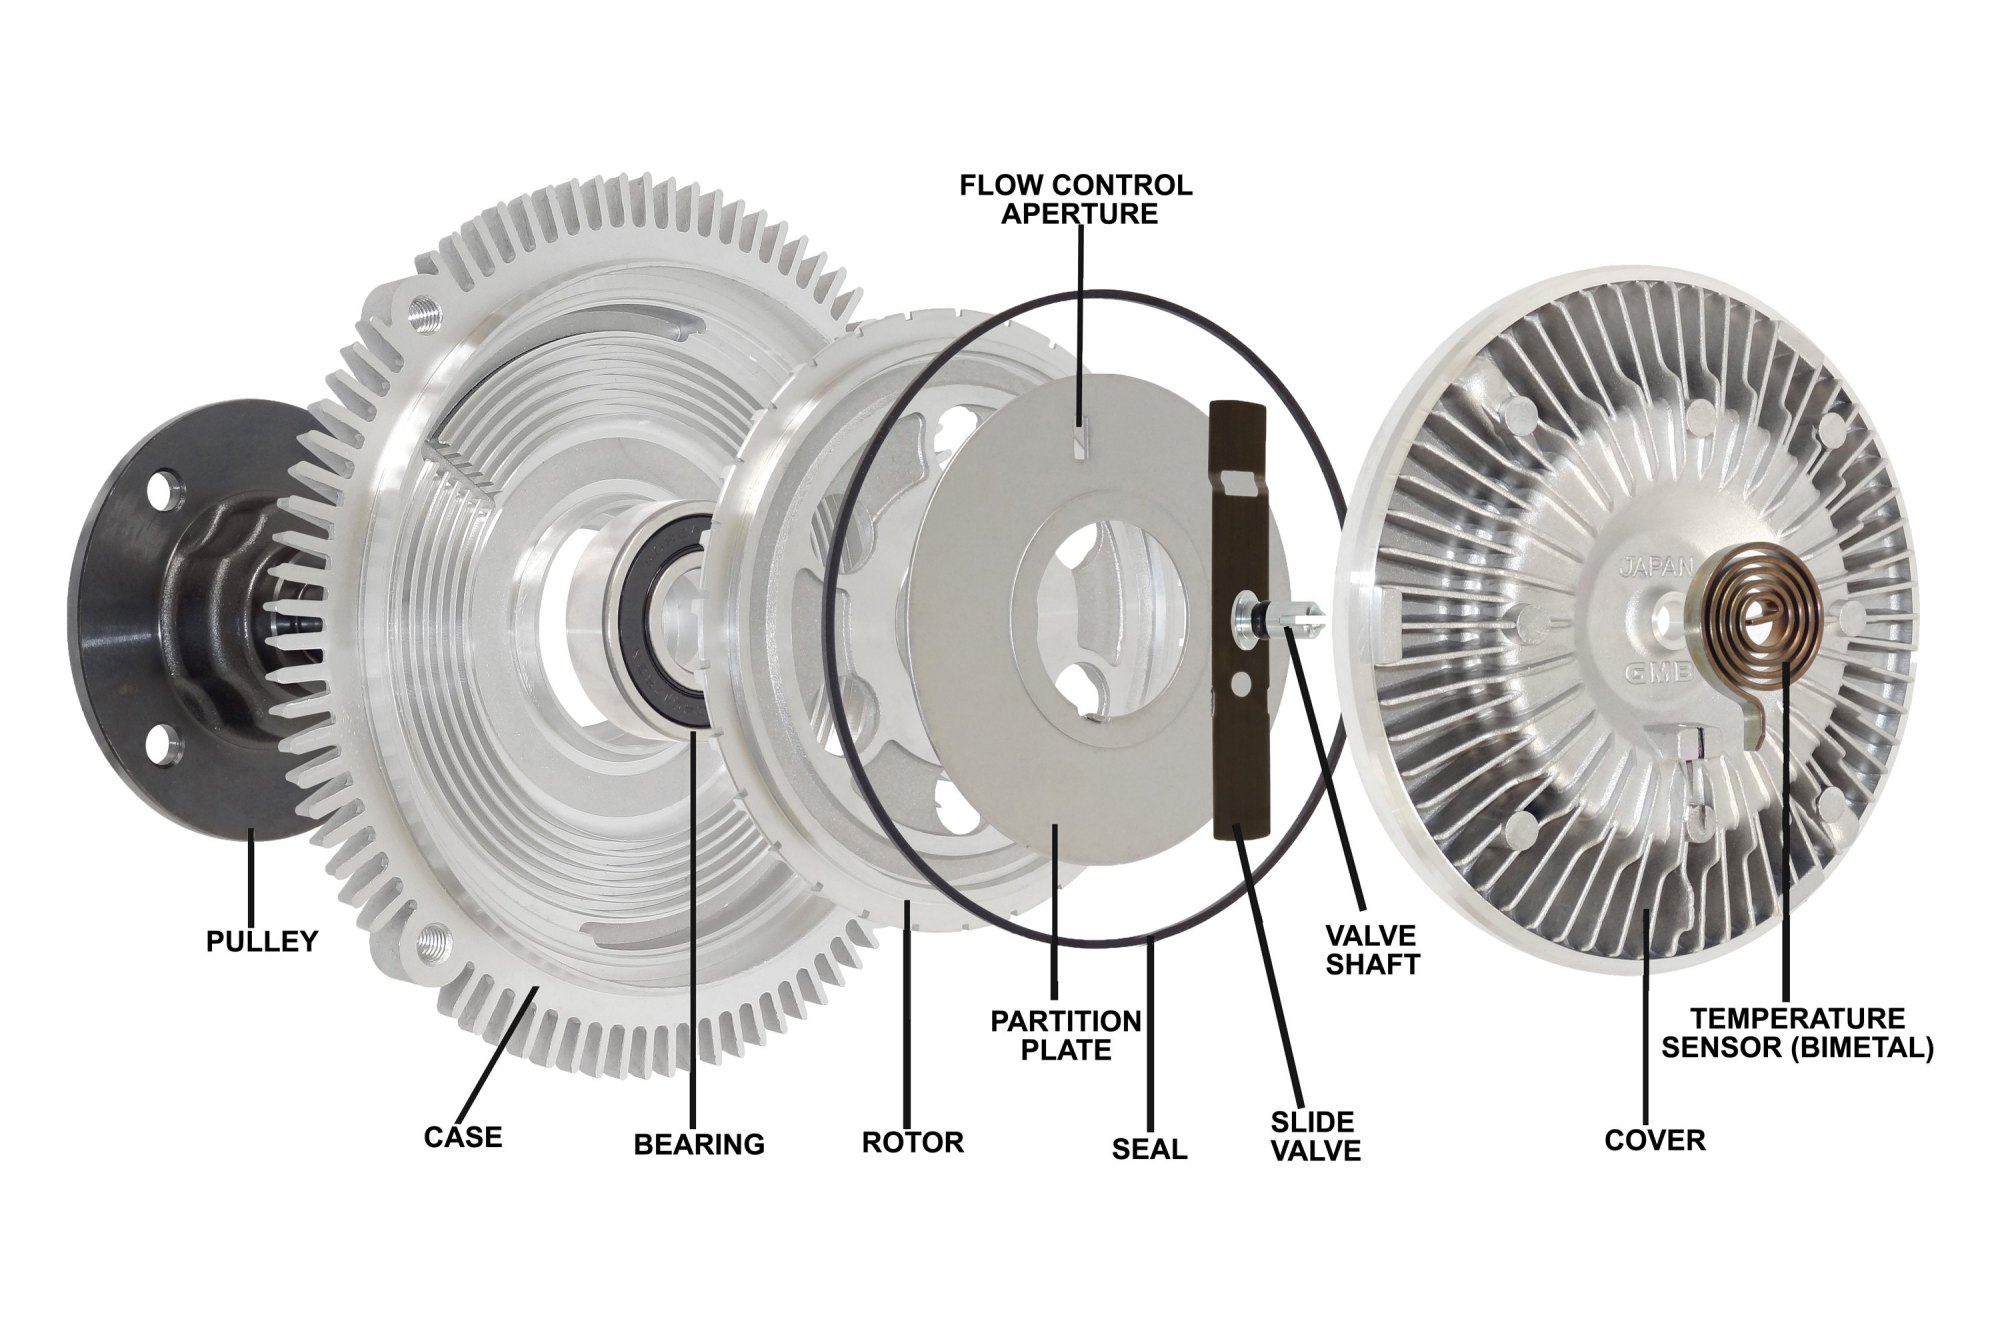 hight resolution of gmb engine cooling fan clutchgmb engine cooling fan clutchgmb engine cooling fan clutchgmb engine cooling fan